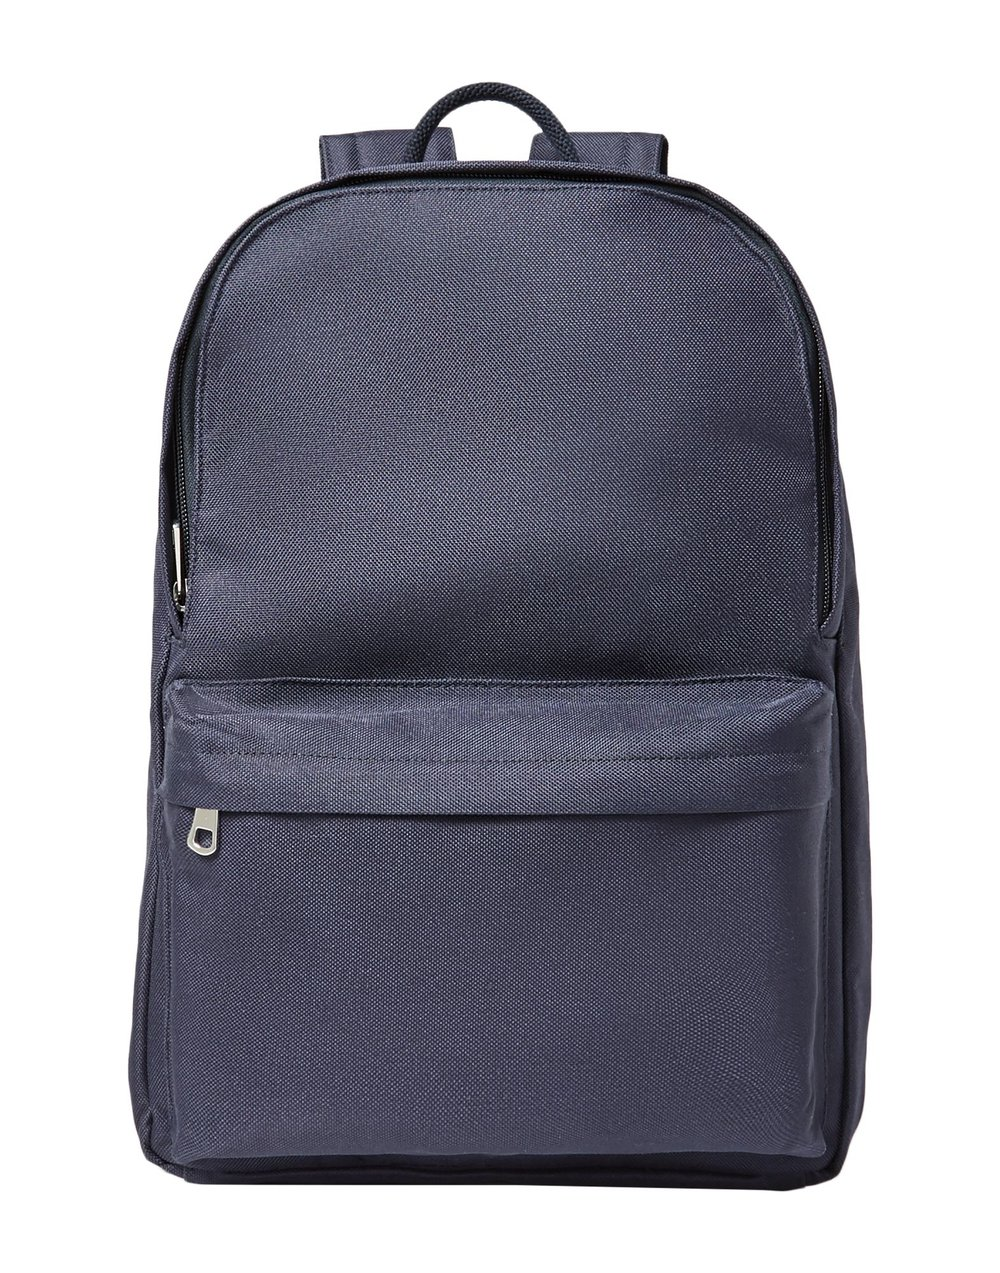 Sac A.P.C - Polyester + inserts cuir74€